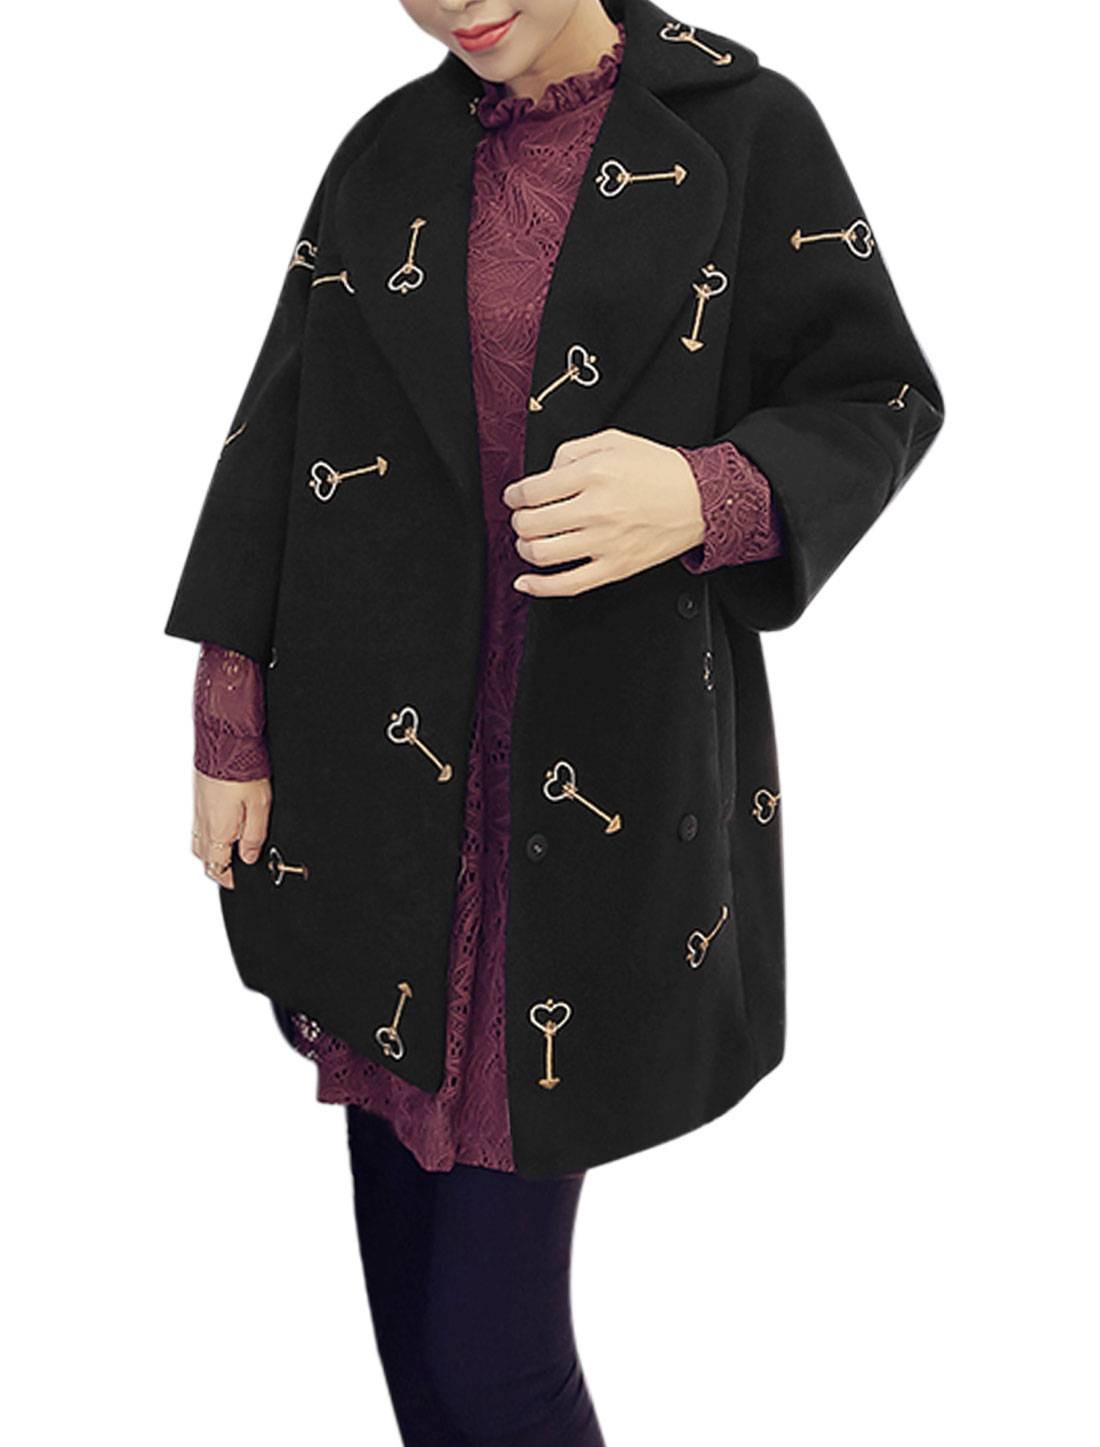 Women Bracelet Sleeves Keys Embroidery Tunic Worsted Coat Black XS